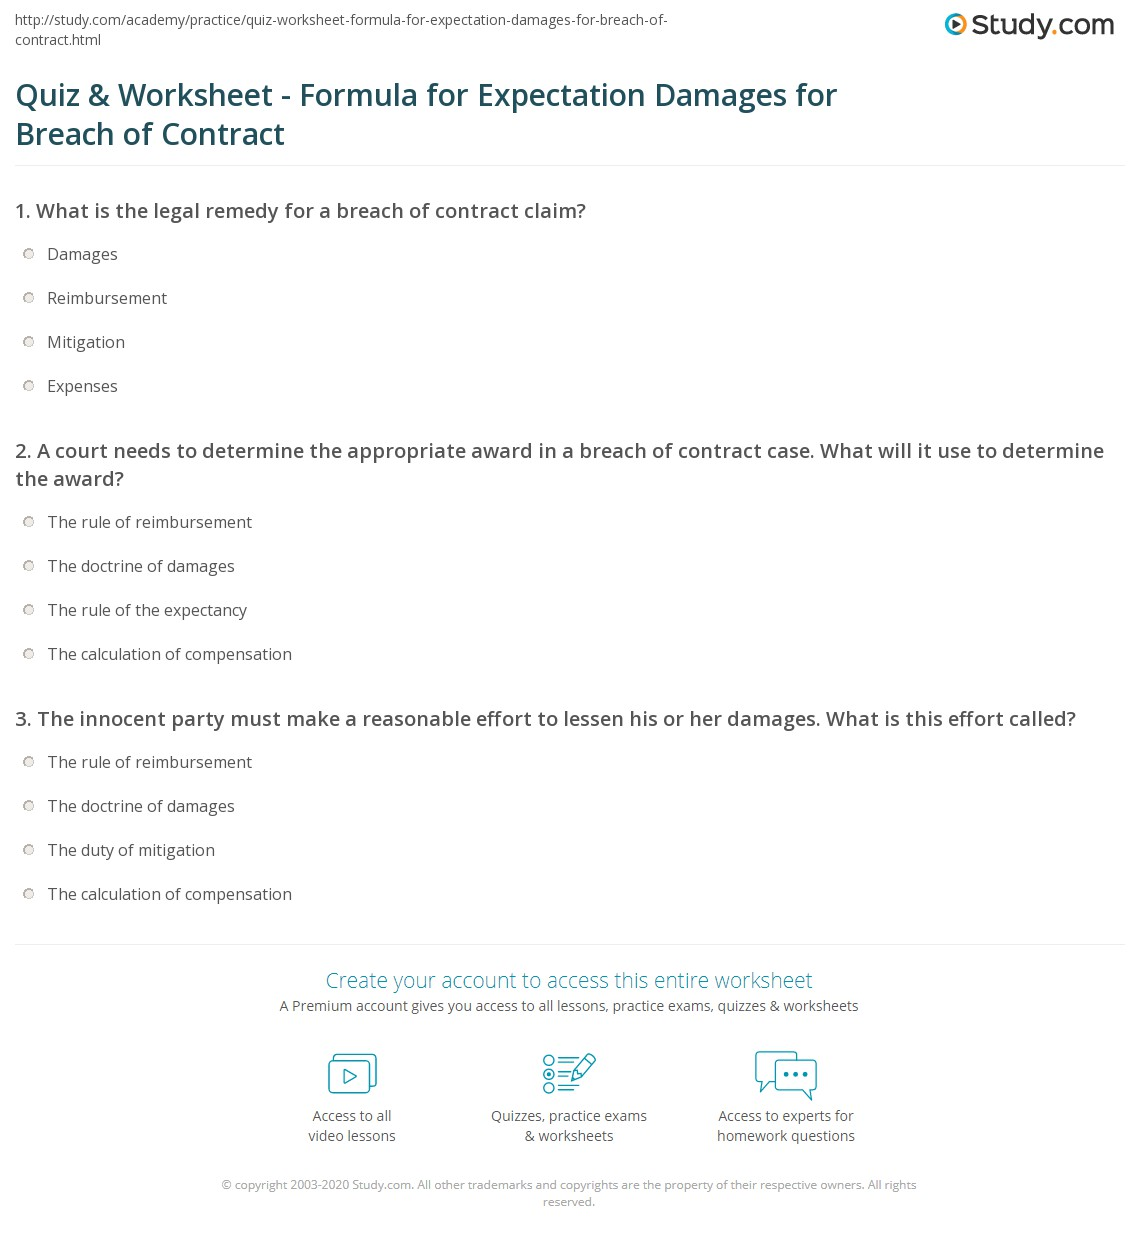 appropriate behavior expectations case study View essay - ece 201 appropriate behavior expectations case study from ece 201 at ashford university running head: appropriate behavior appropriate behavior expectations case study kimberly.